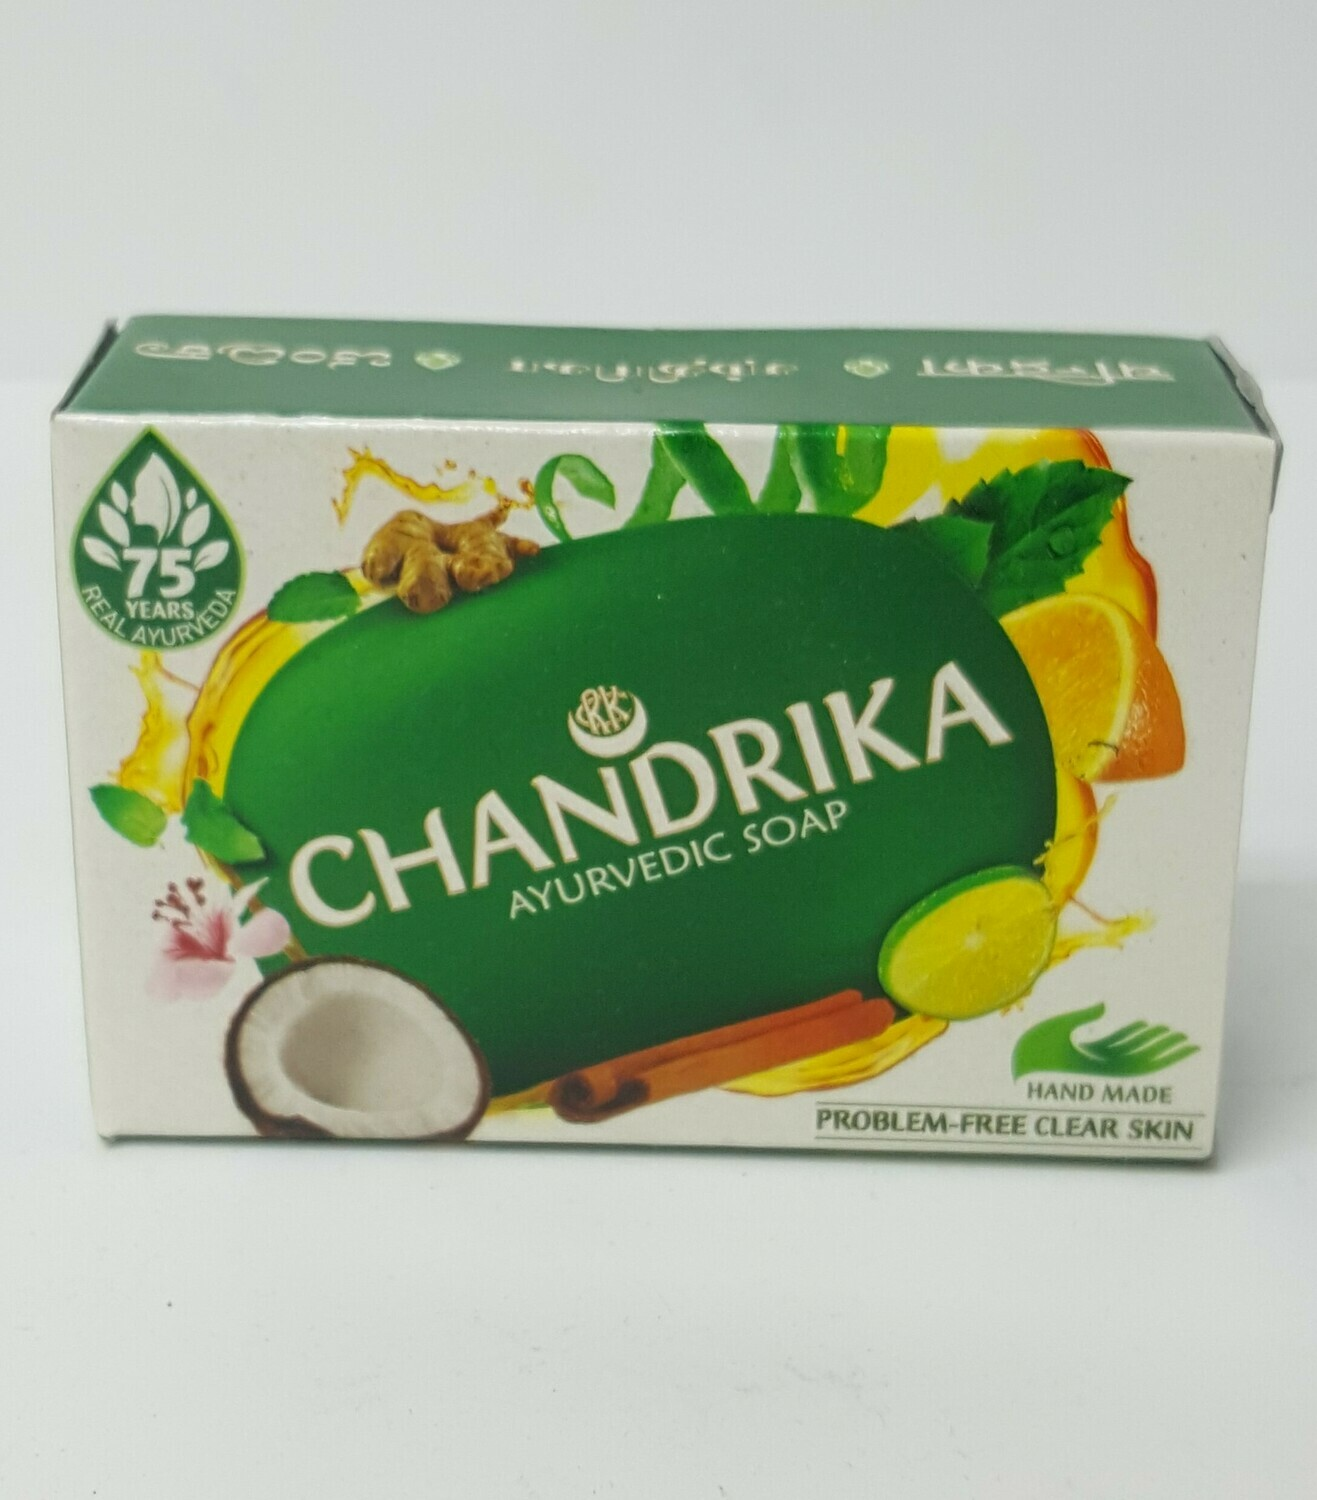 Ayurvedic Soap CHANDRIKA 250 g